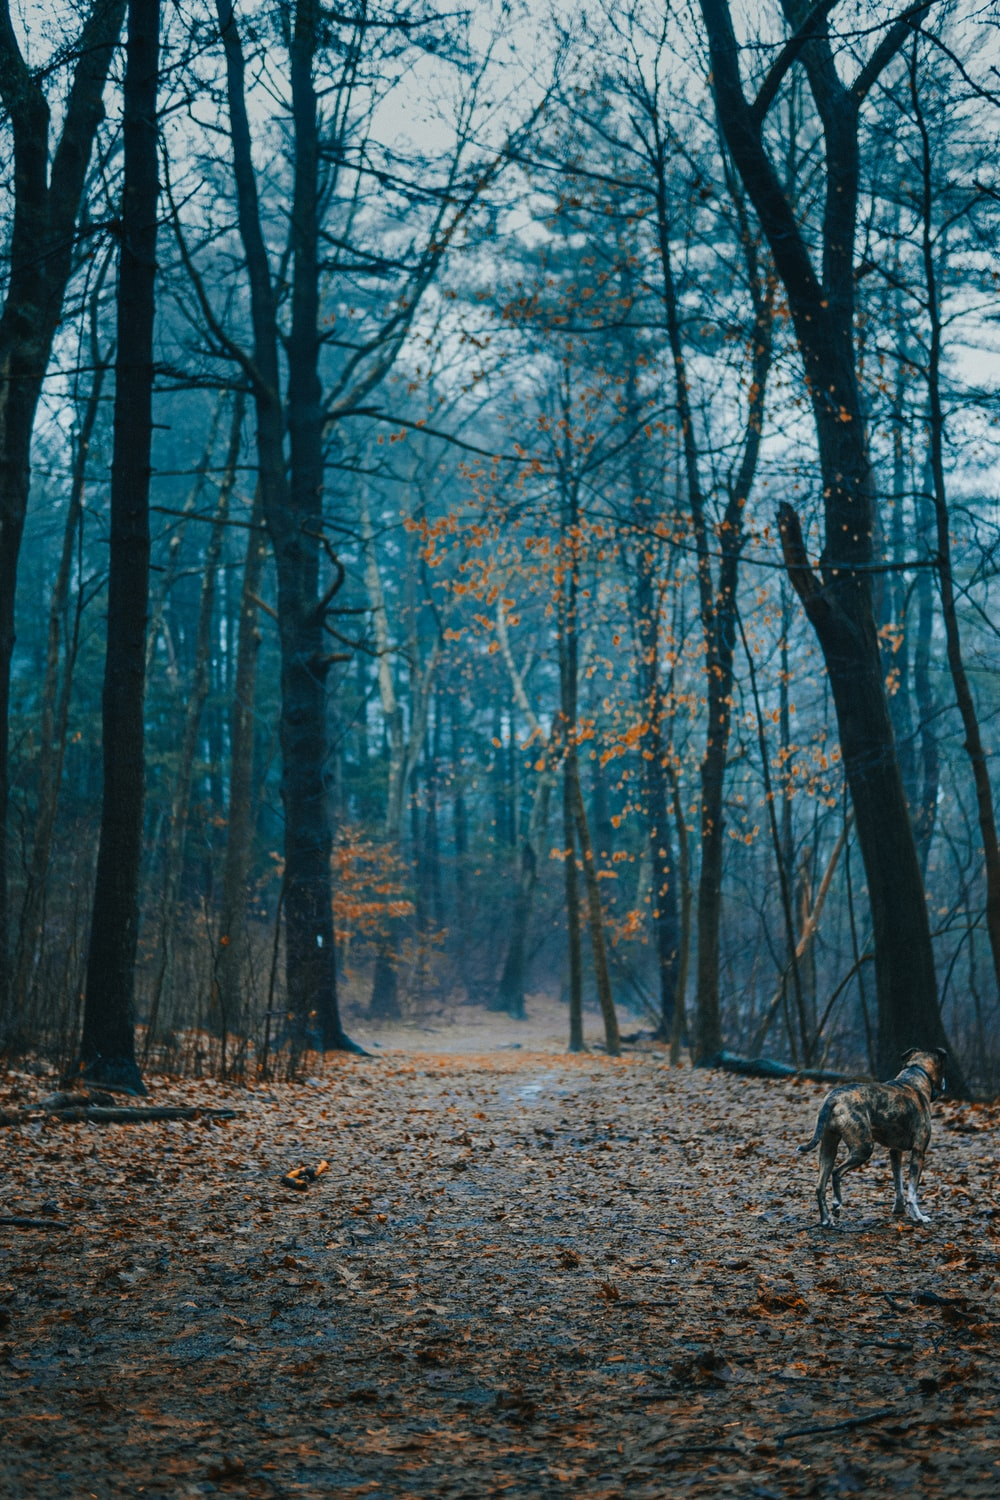 brown and black dog walking on forest during daytime